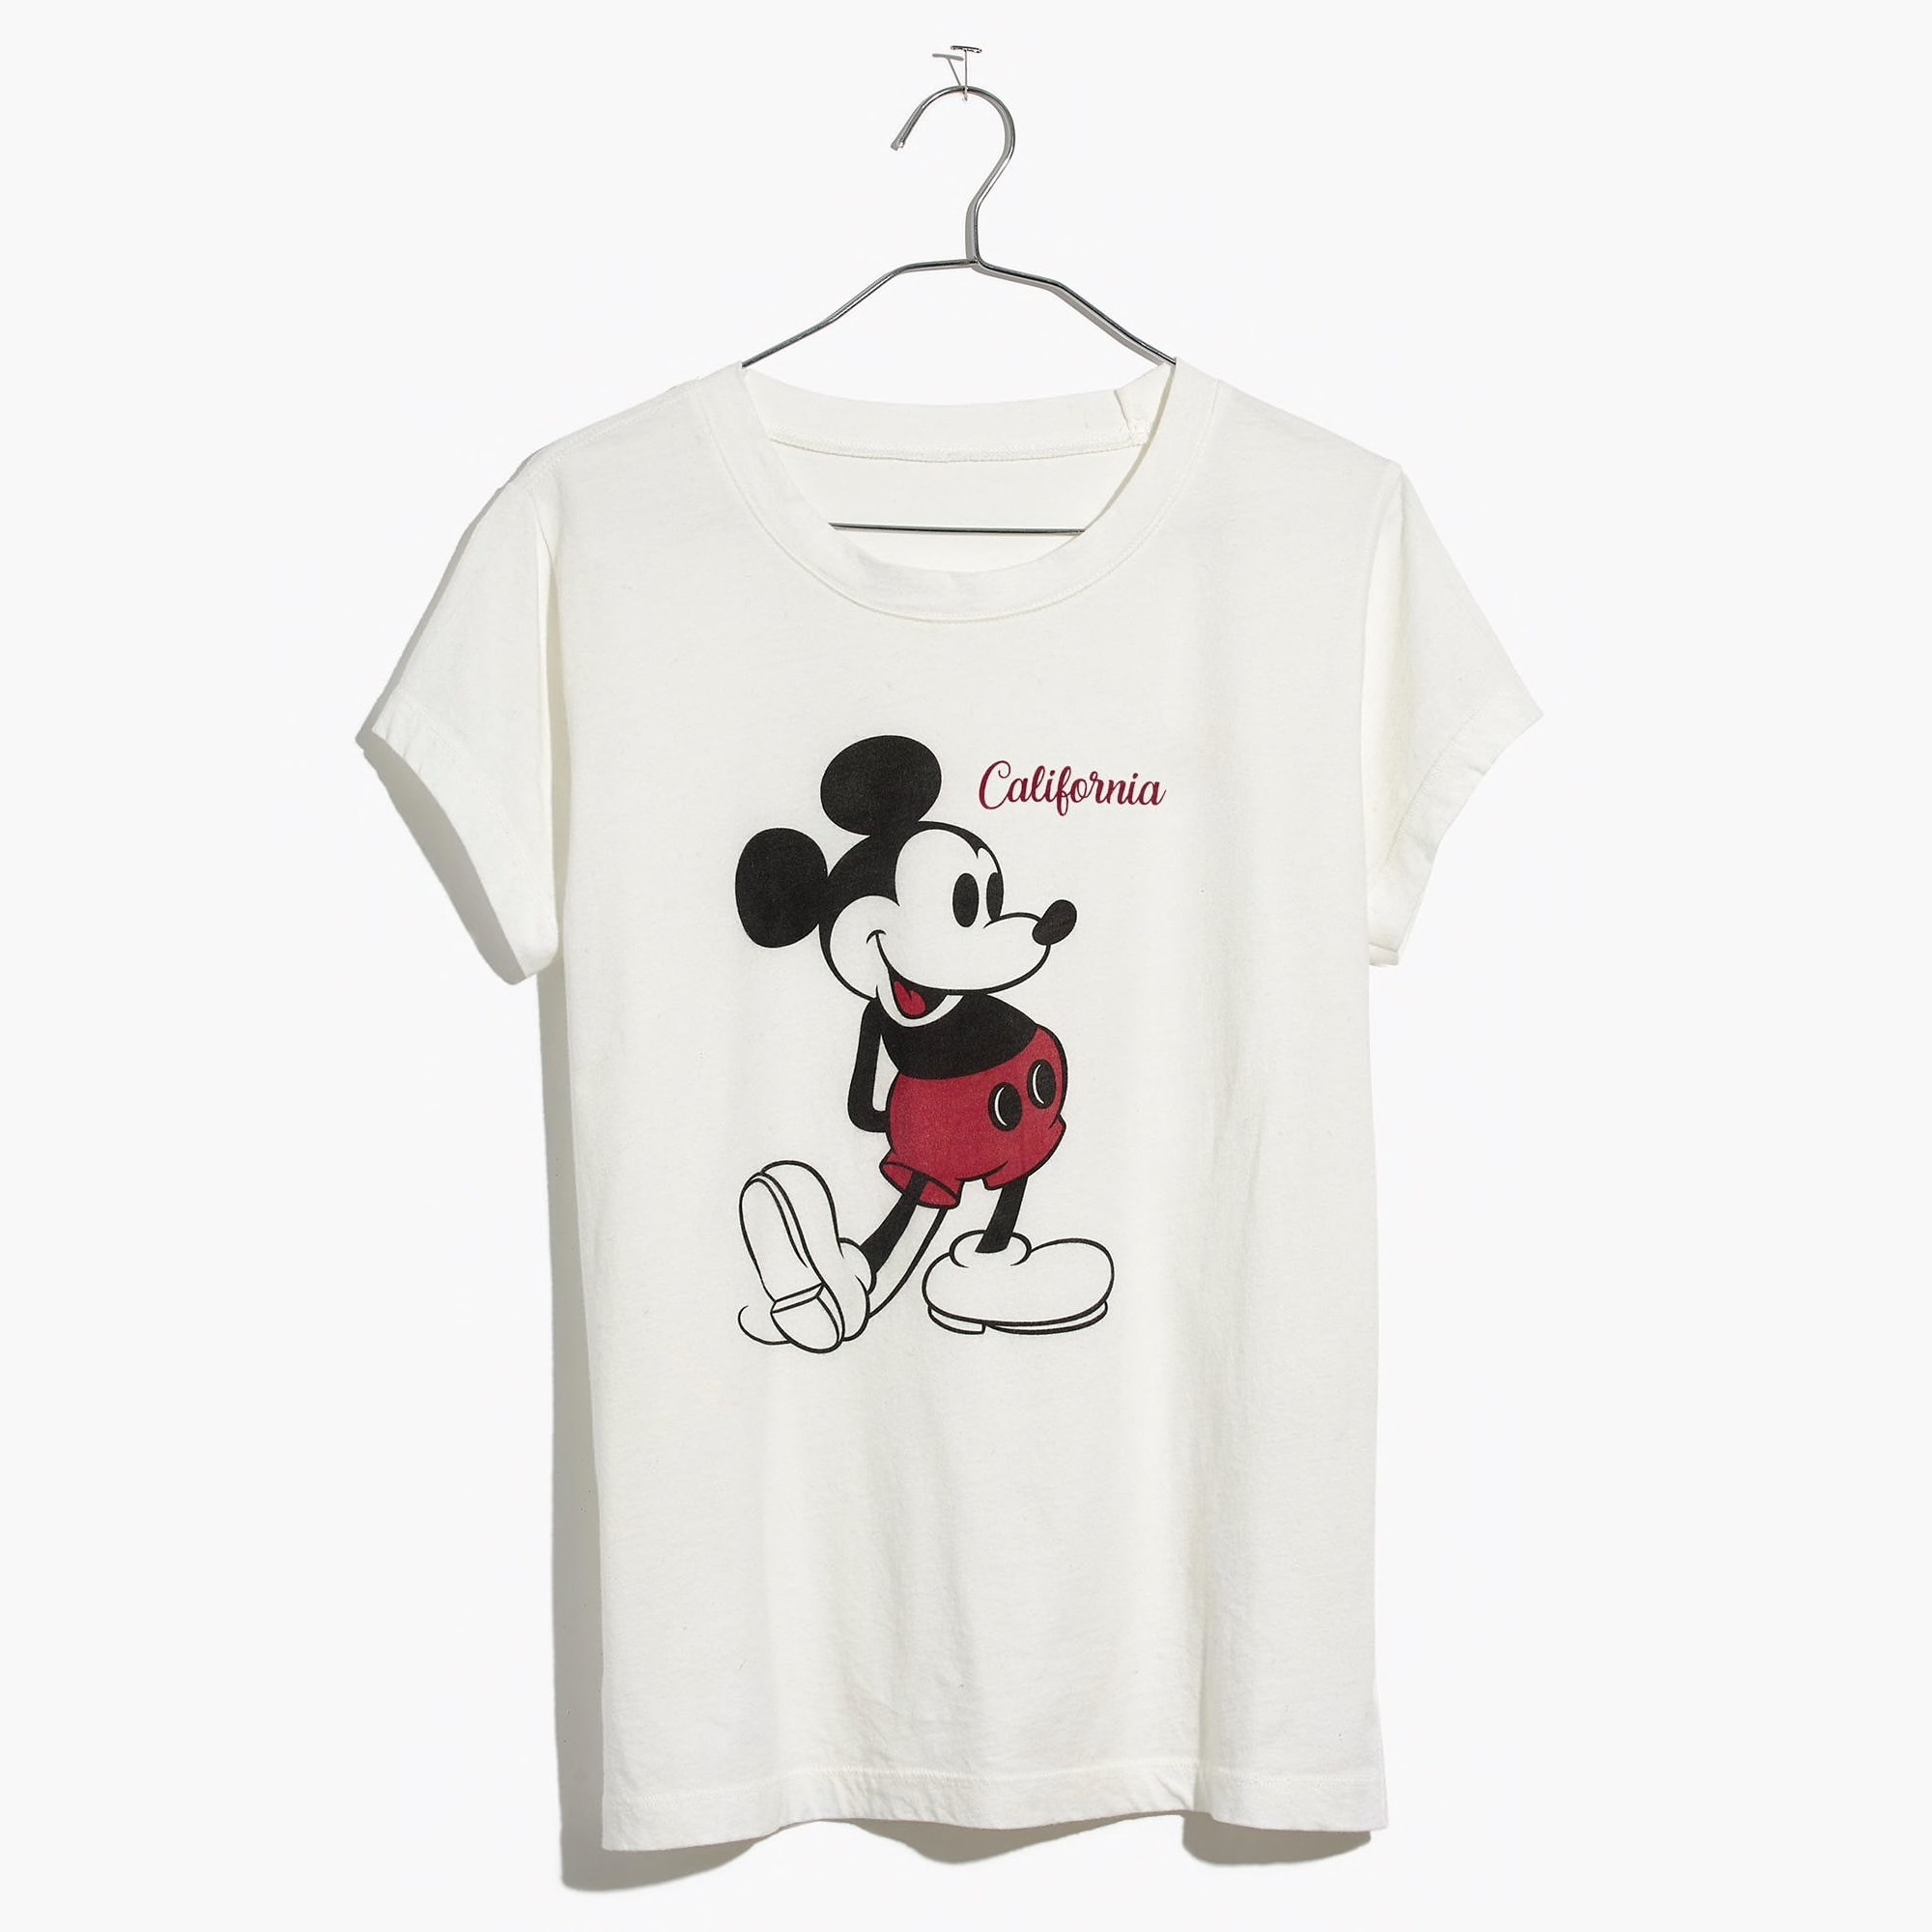 Tee shirt from Madewell's Mickey Mouse Spring Collection